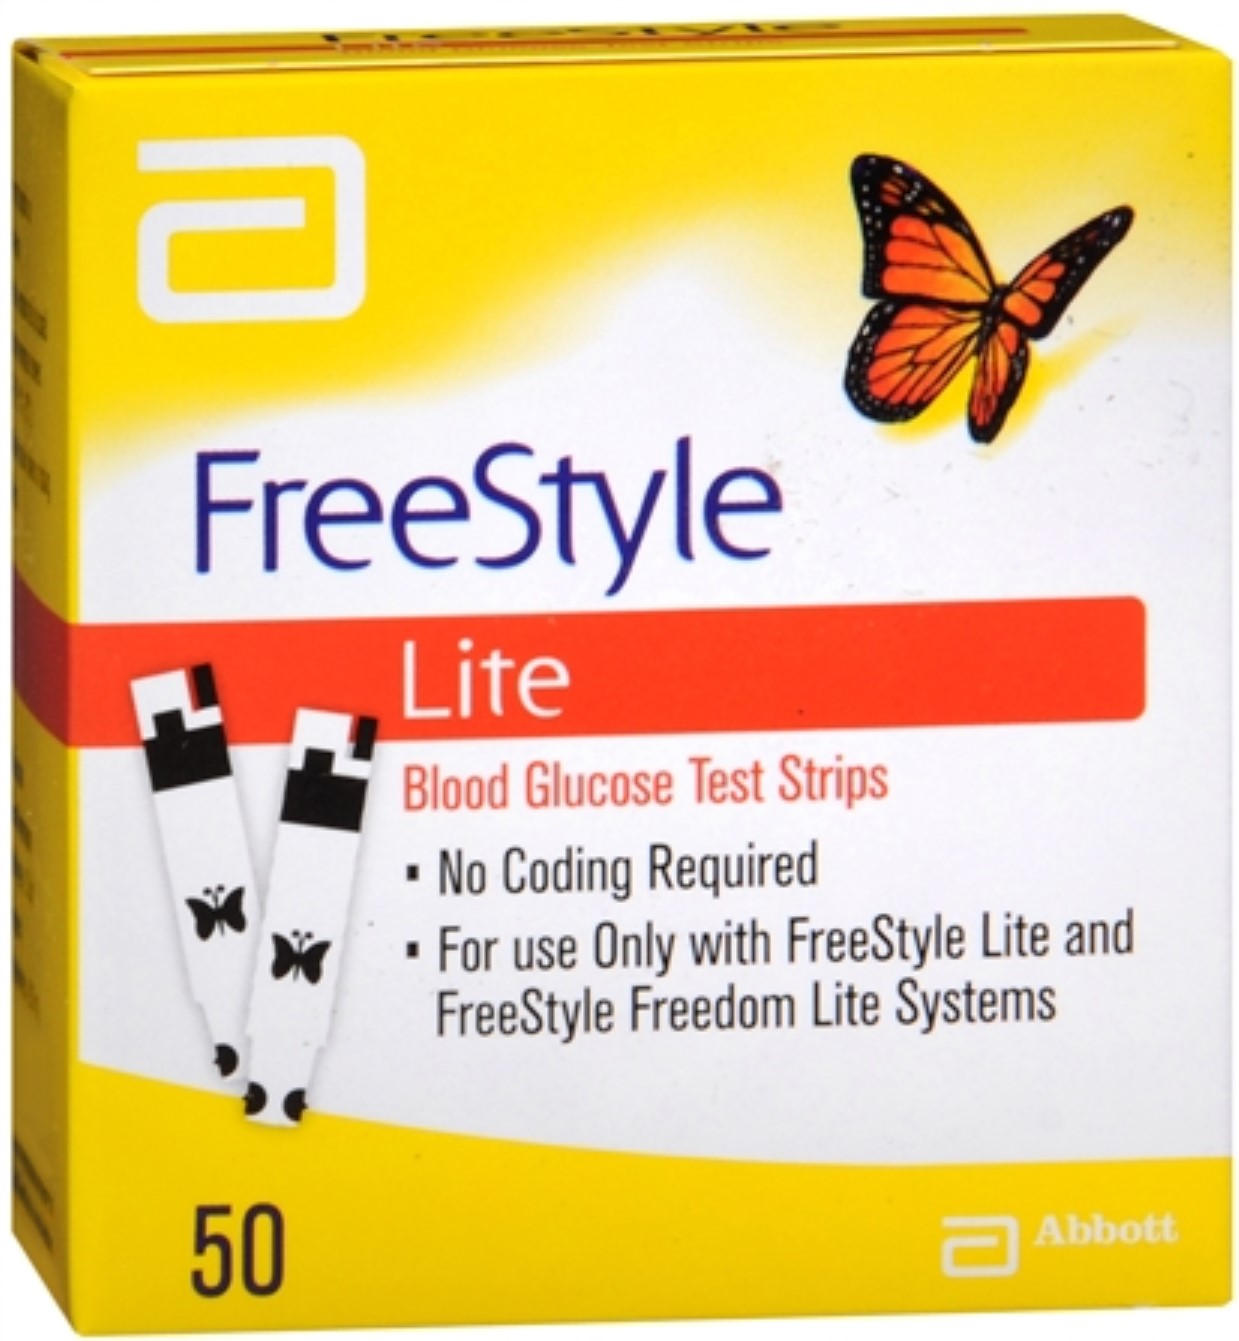 FreeStyle Lite Blood Glucose Test Strips 50 Each (Pack of 2)